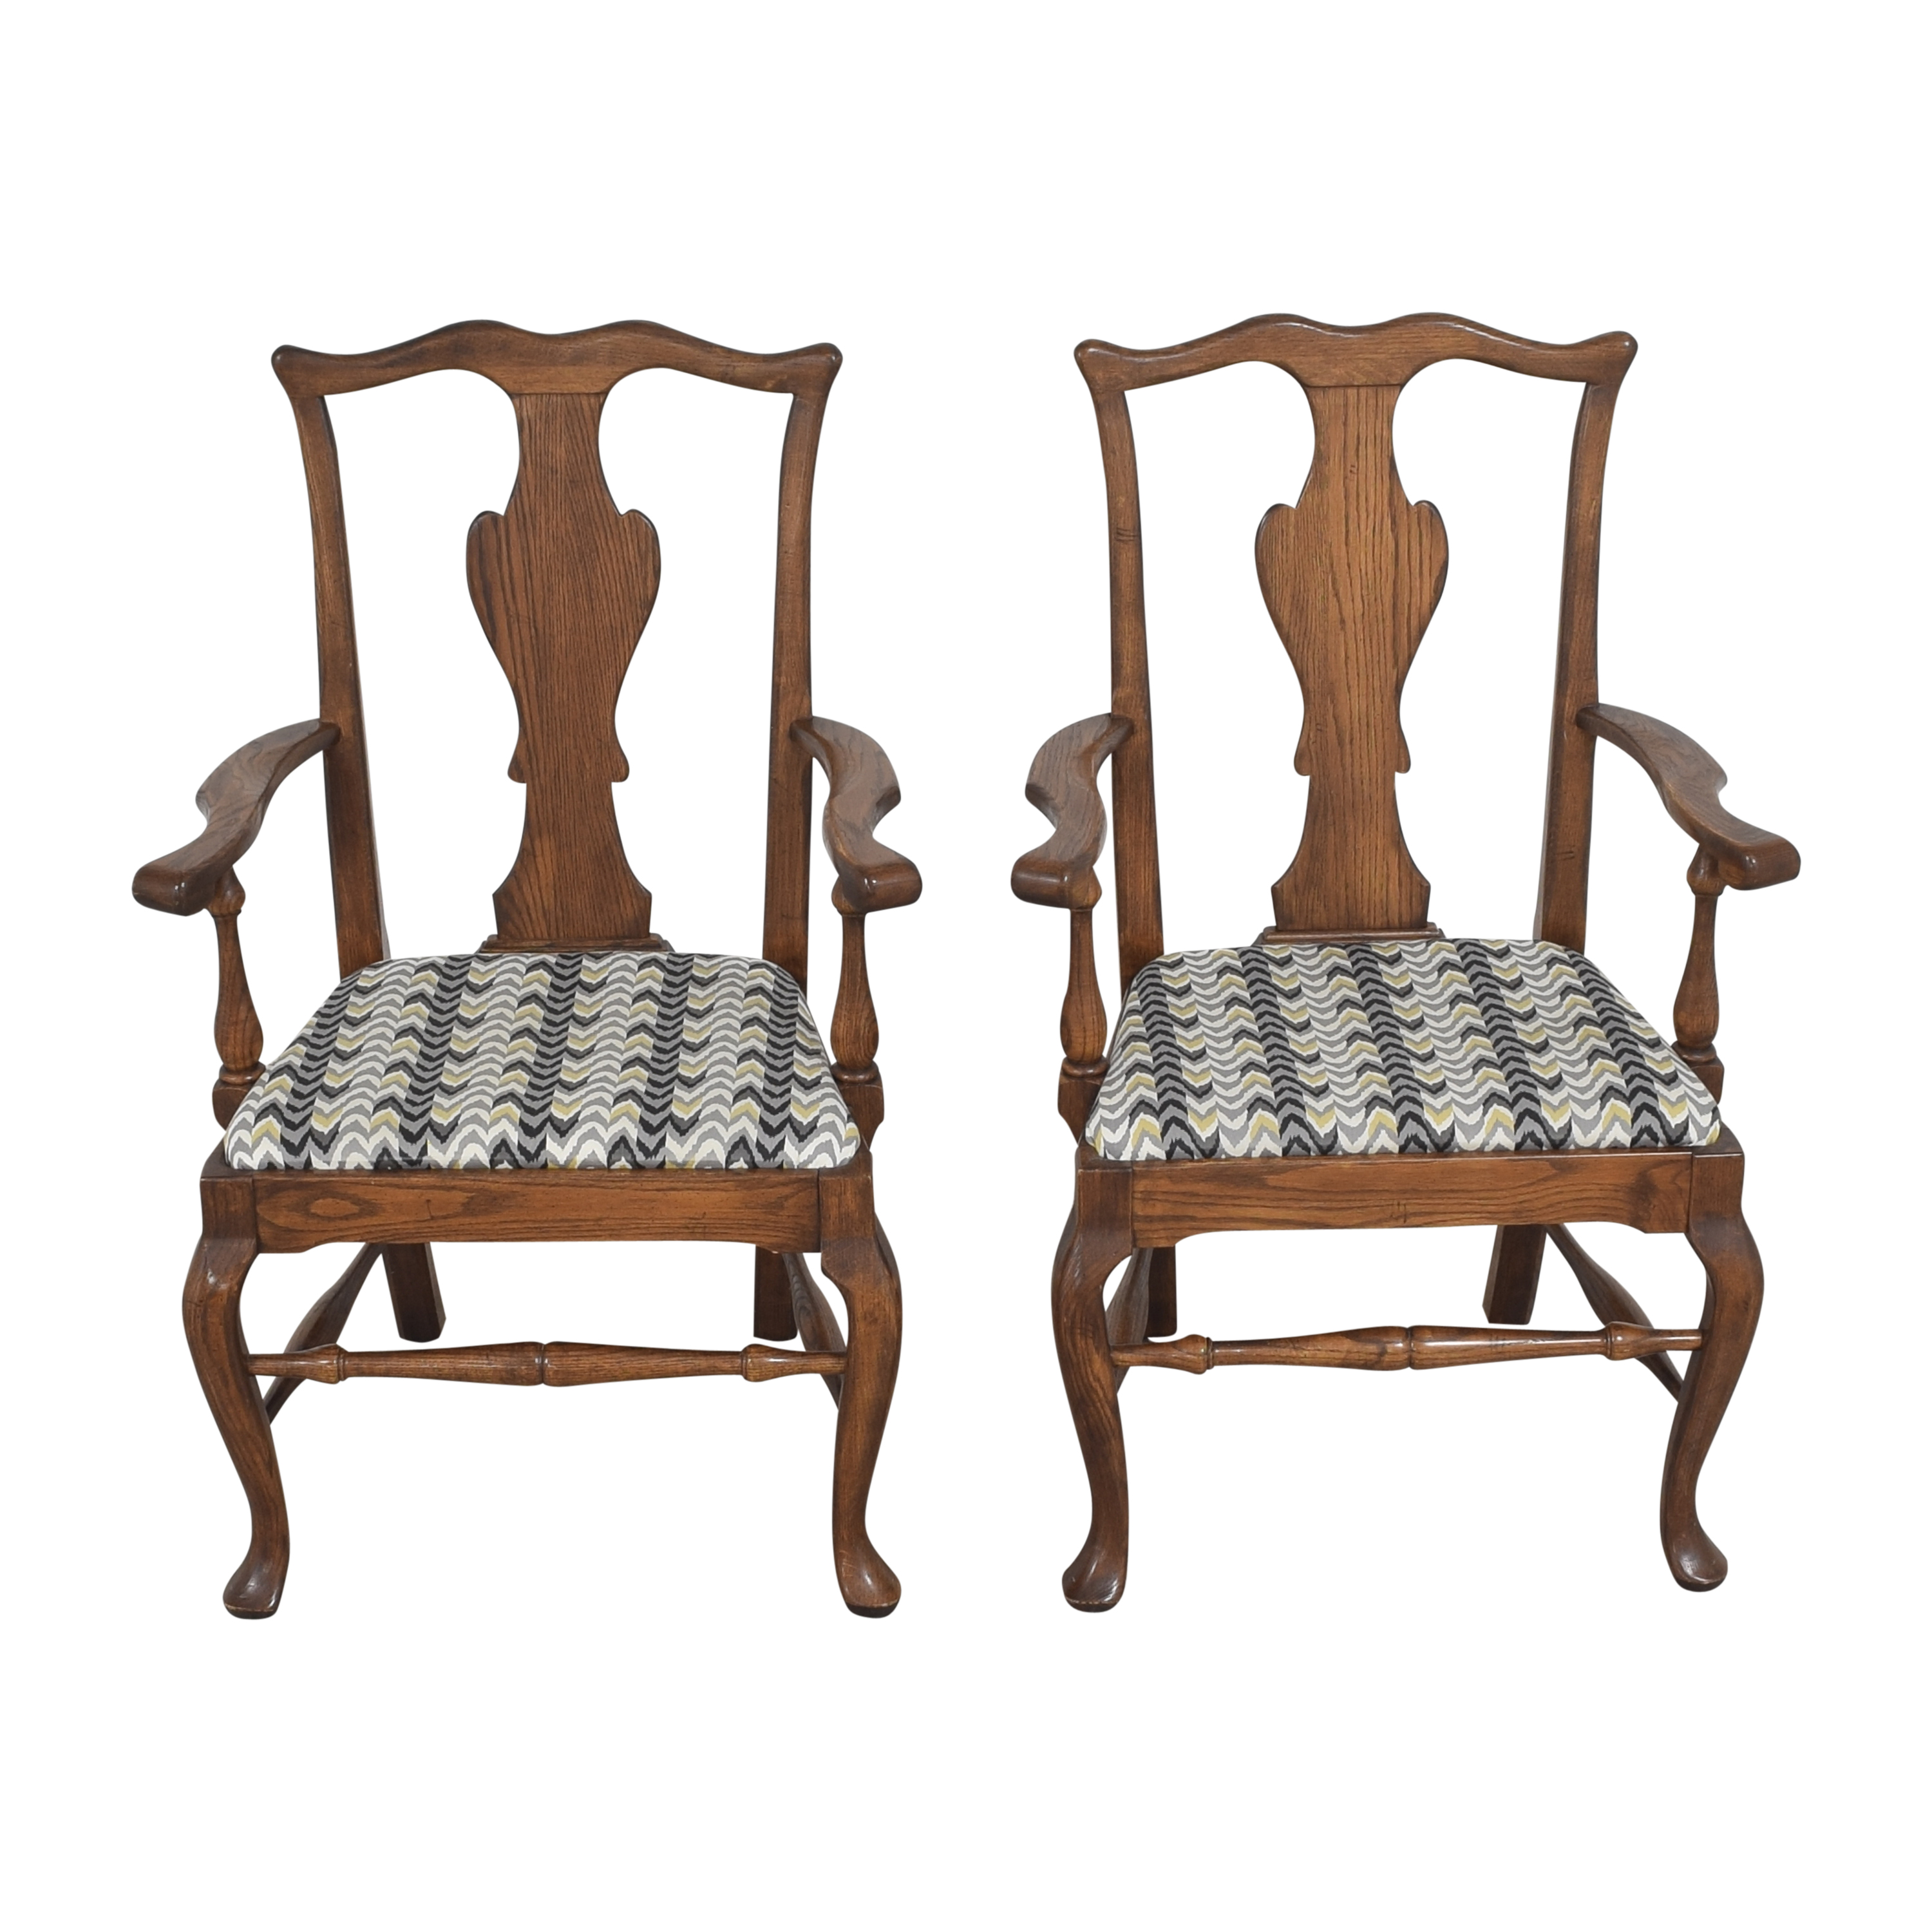 Ethan Allen Ethan Allen Queen Anne Dining Arm Chairs coupon